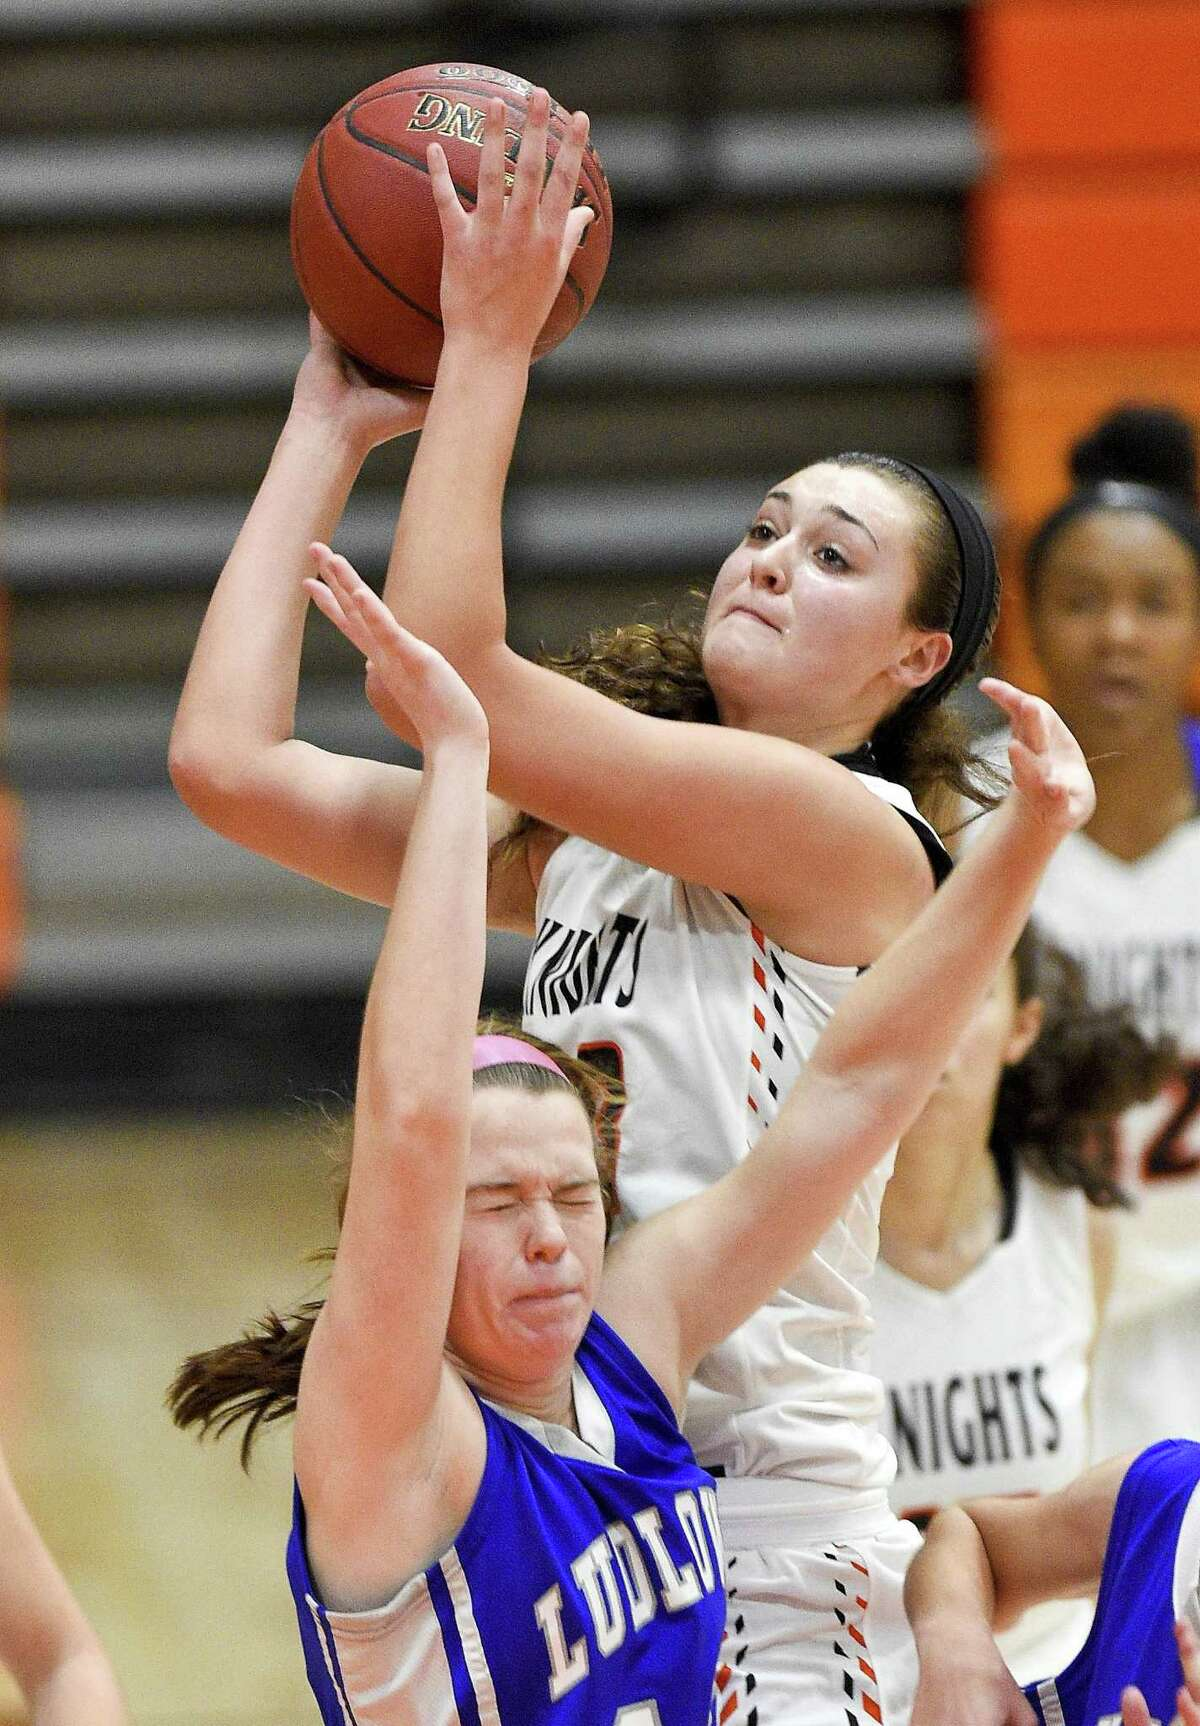 Stamford's Alexa Kellner (23) puts up a shot against Fairfield Ludlowe's Anna Catherine Paulmann (10) during a girls varsity basketball game at Stamford High School in Stamford, Conn. on Friday, Dec. 22, 2017. Stamford defeated Fairfield Ludlowe 38-33.